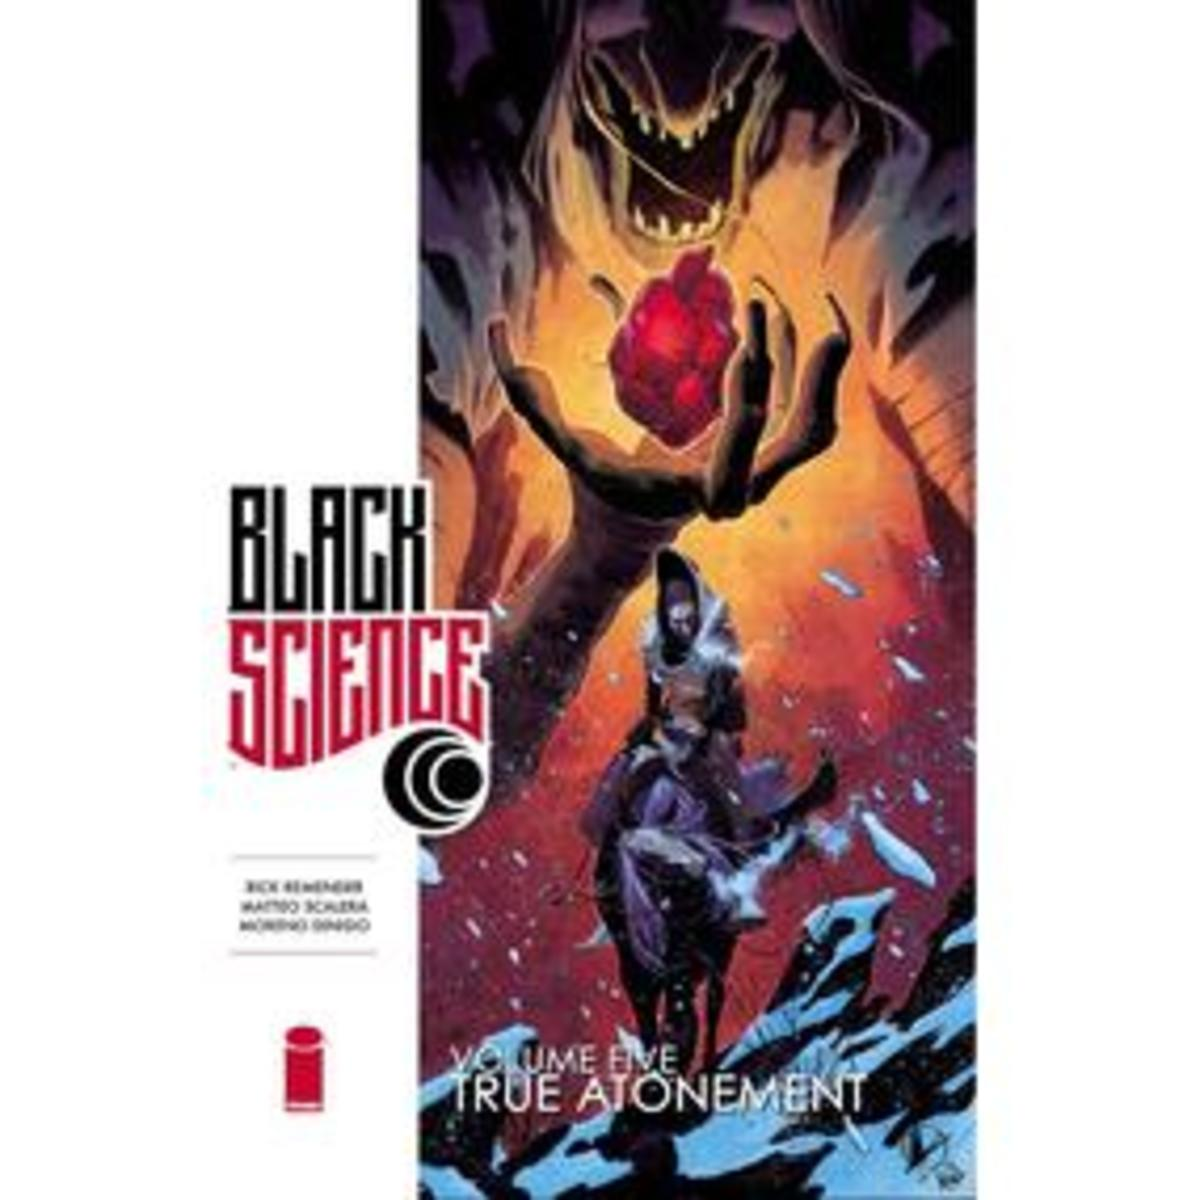 Review of Black Science, volume. 5: True Atonement